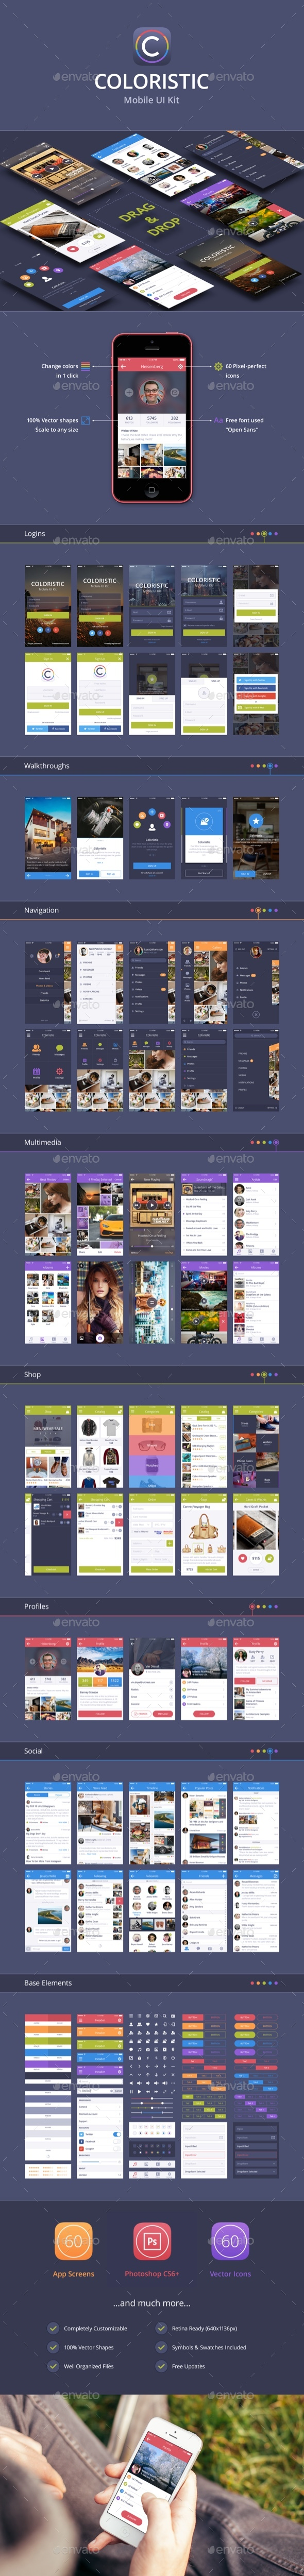 Shopapp - Flat Mobile App UI - Shopping (User Interfaces)